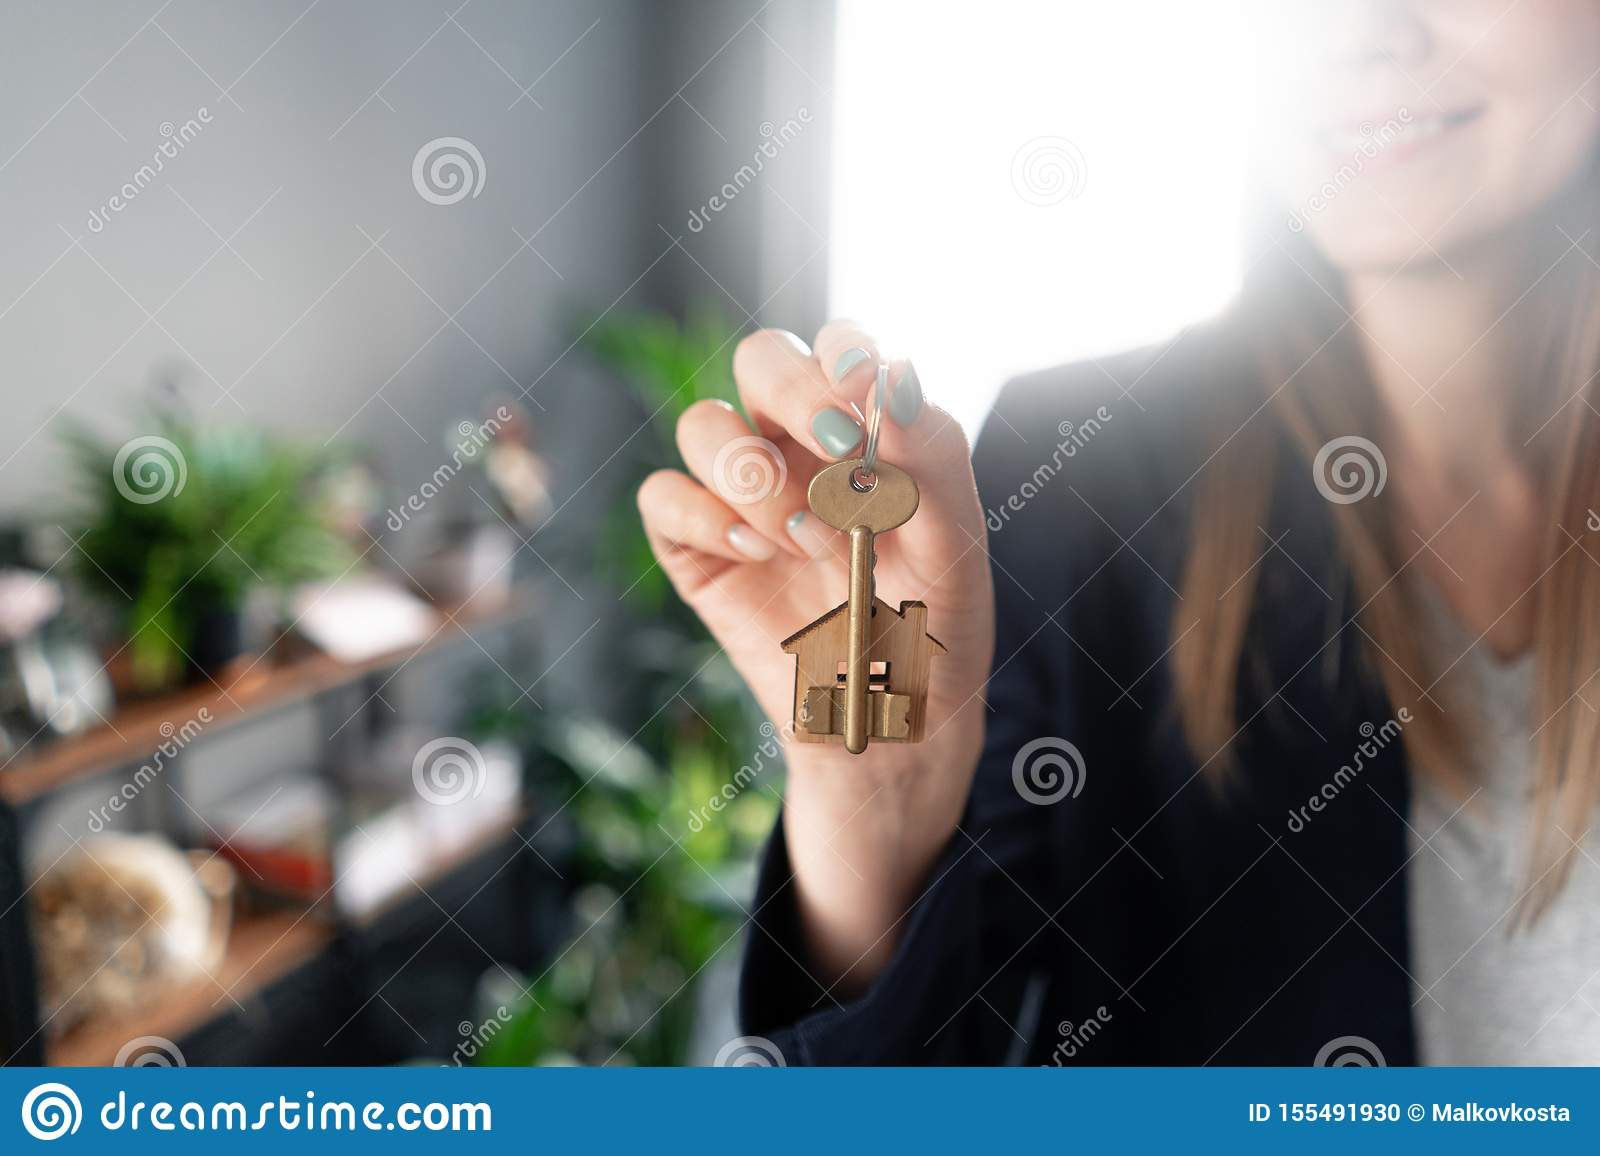 House key rotates on the finger in womans hands. Young pretty woman smiles. Modern light lobby interior. Real estate